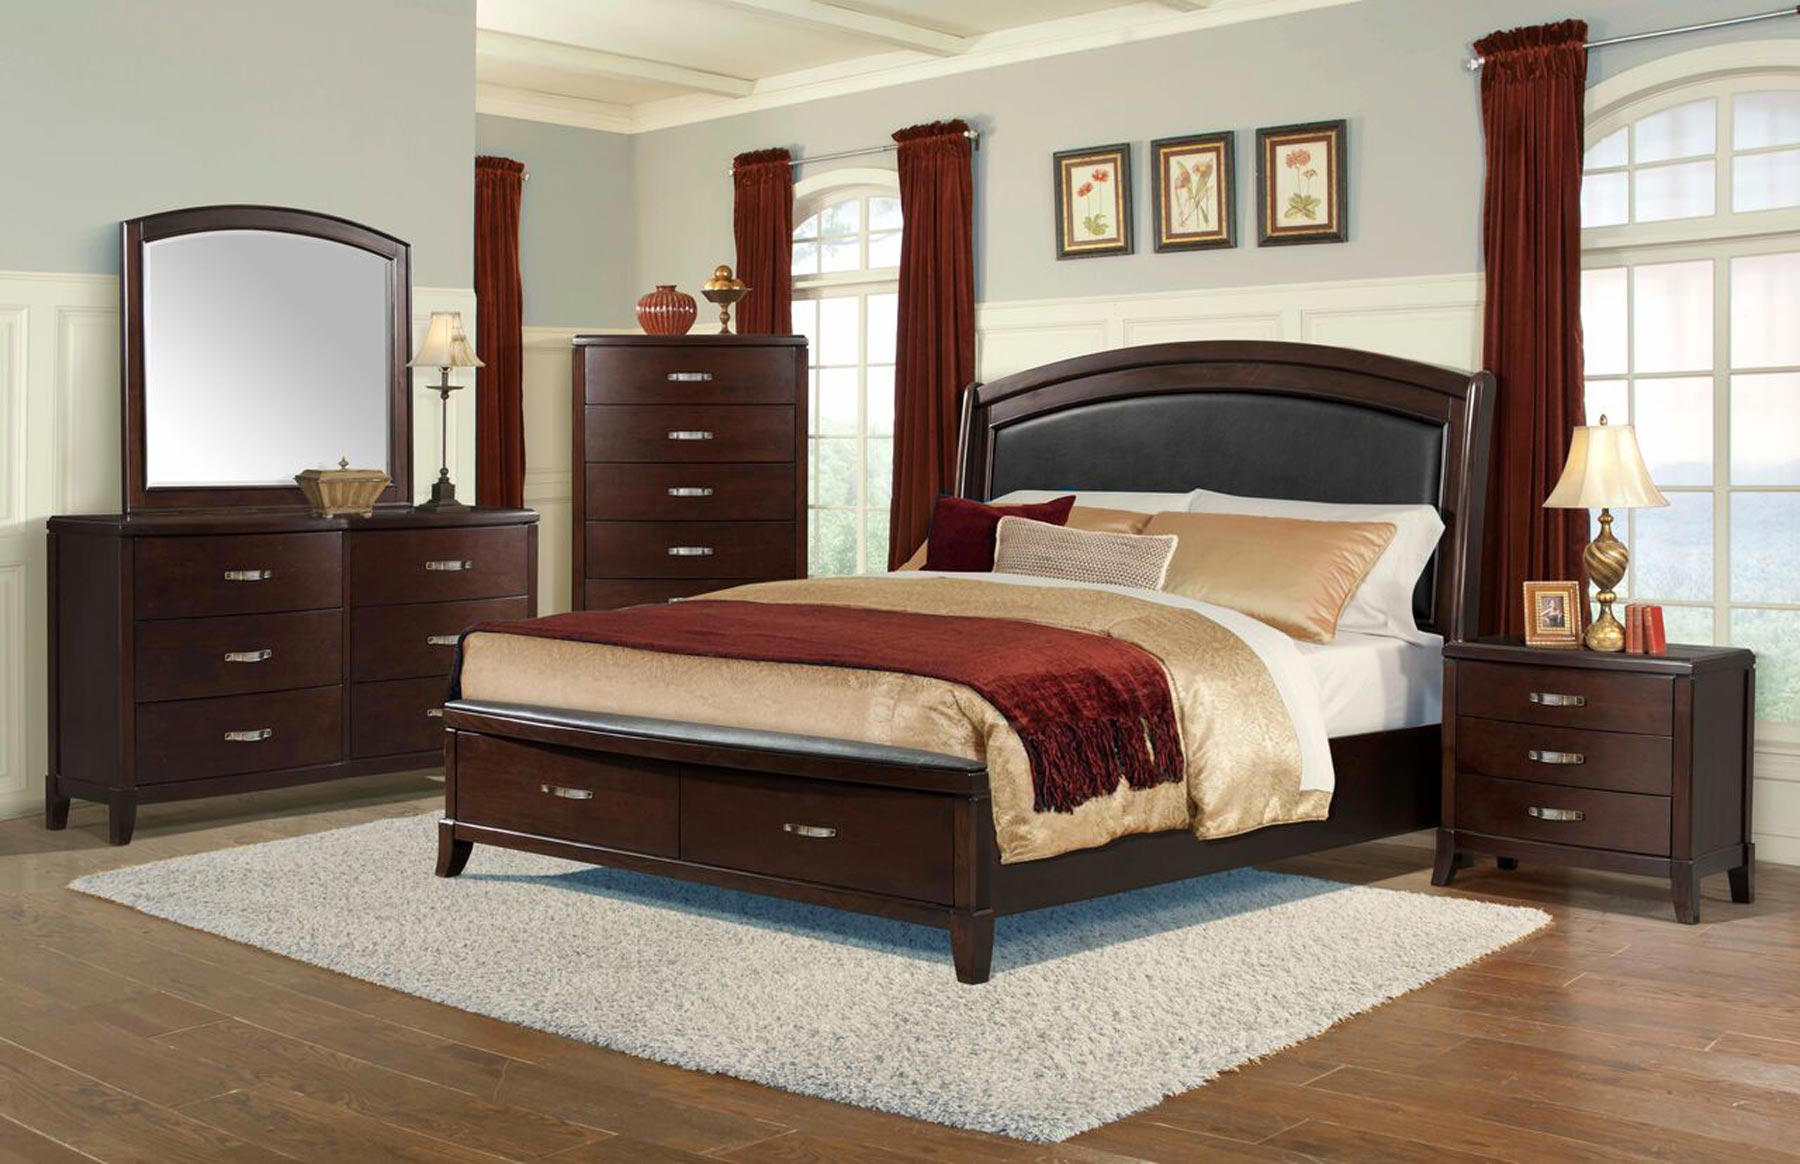 Delaney 6 Piece Bedroom Set Gonzalez Furniture